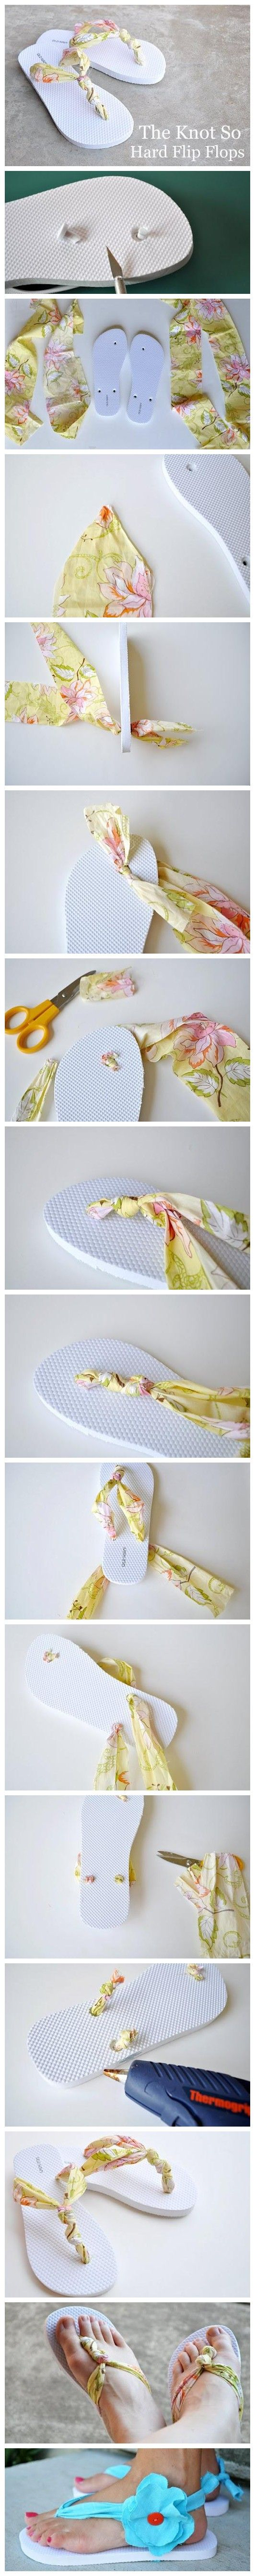 Do it yourself flip flops